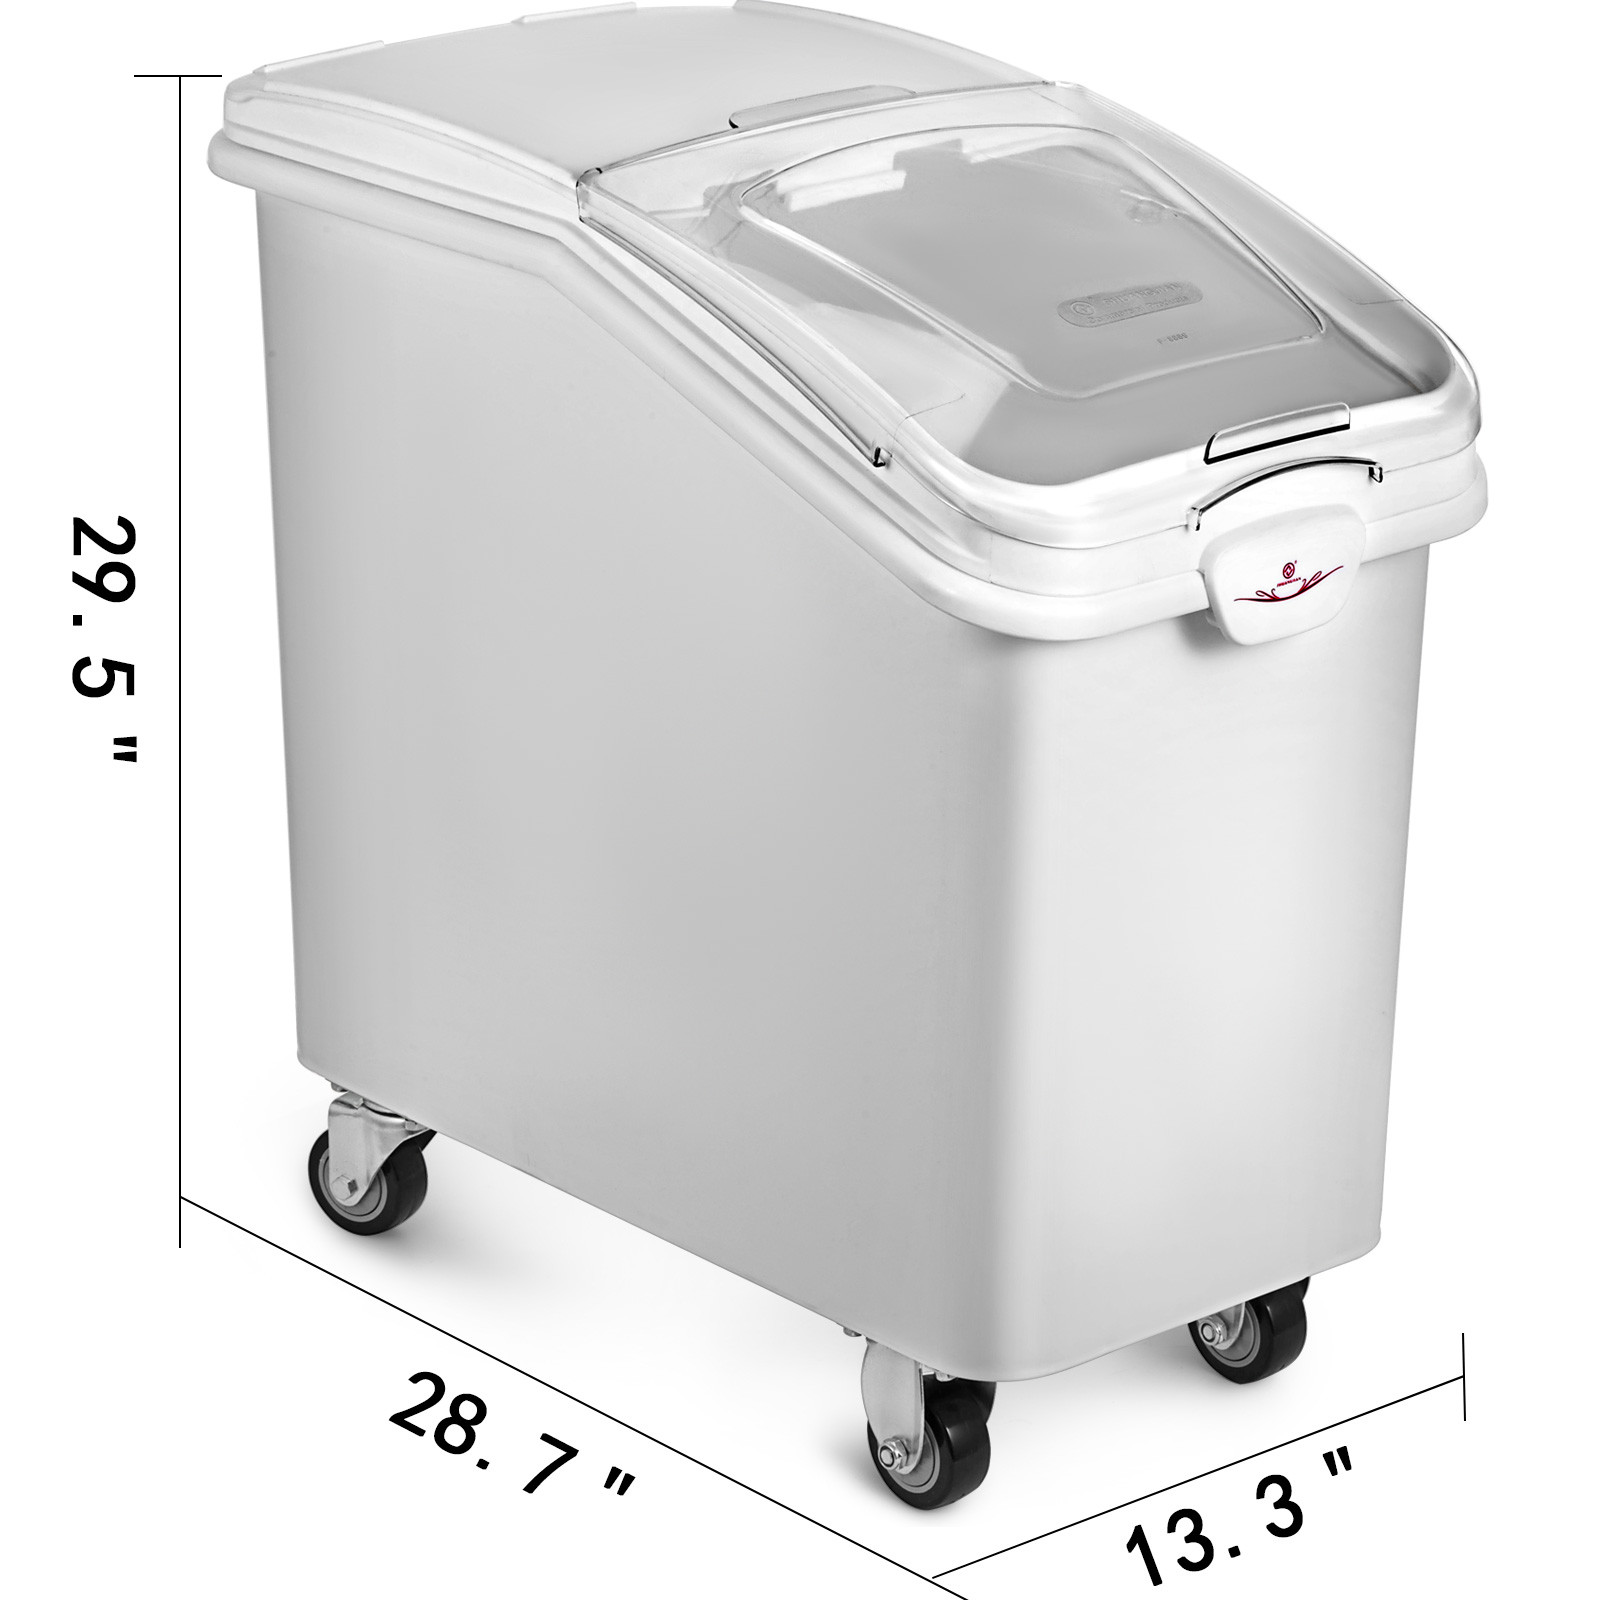 Ingredient Storage Bin 21/27 Gallon Mobile Container w ...